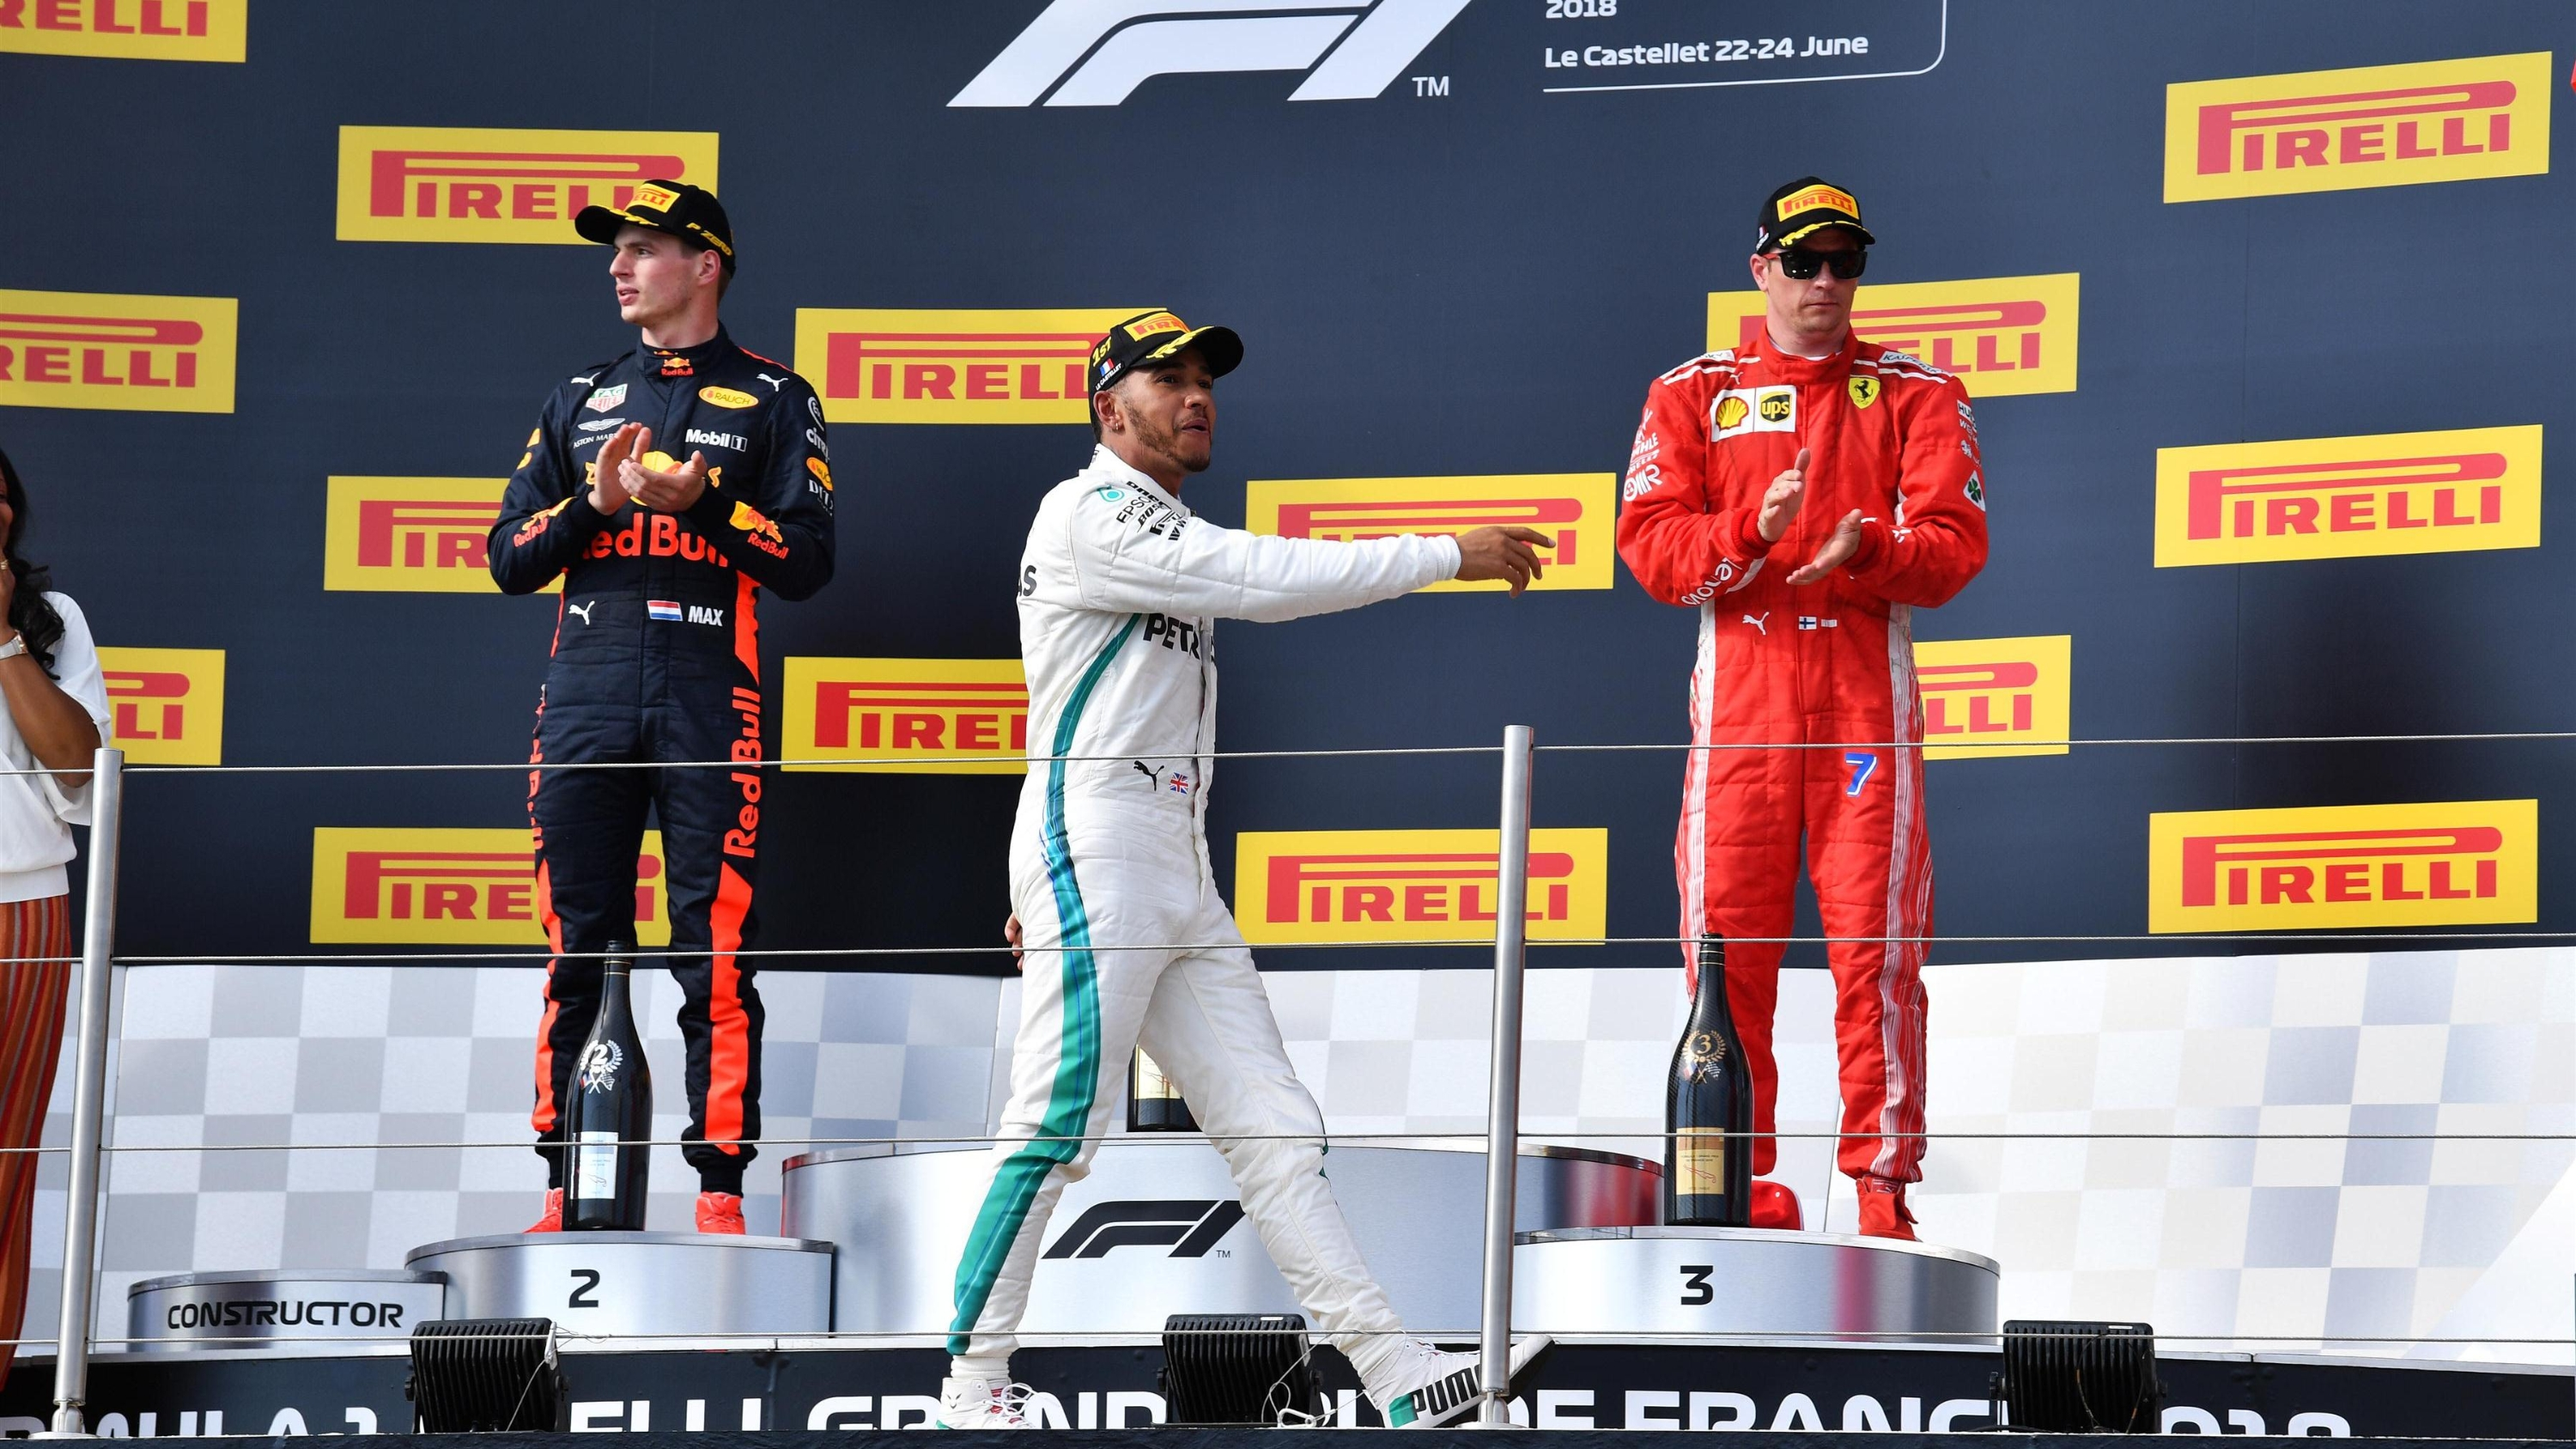 Lewis Hamilton Stands With Sebastian Vettel After Media Criticism